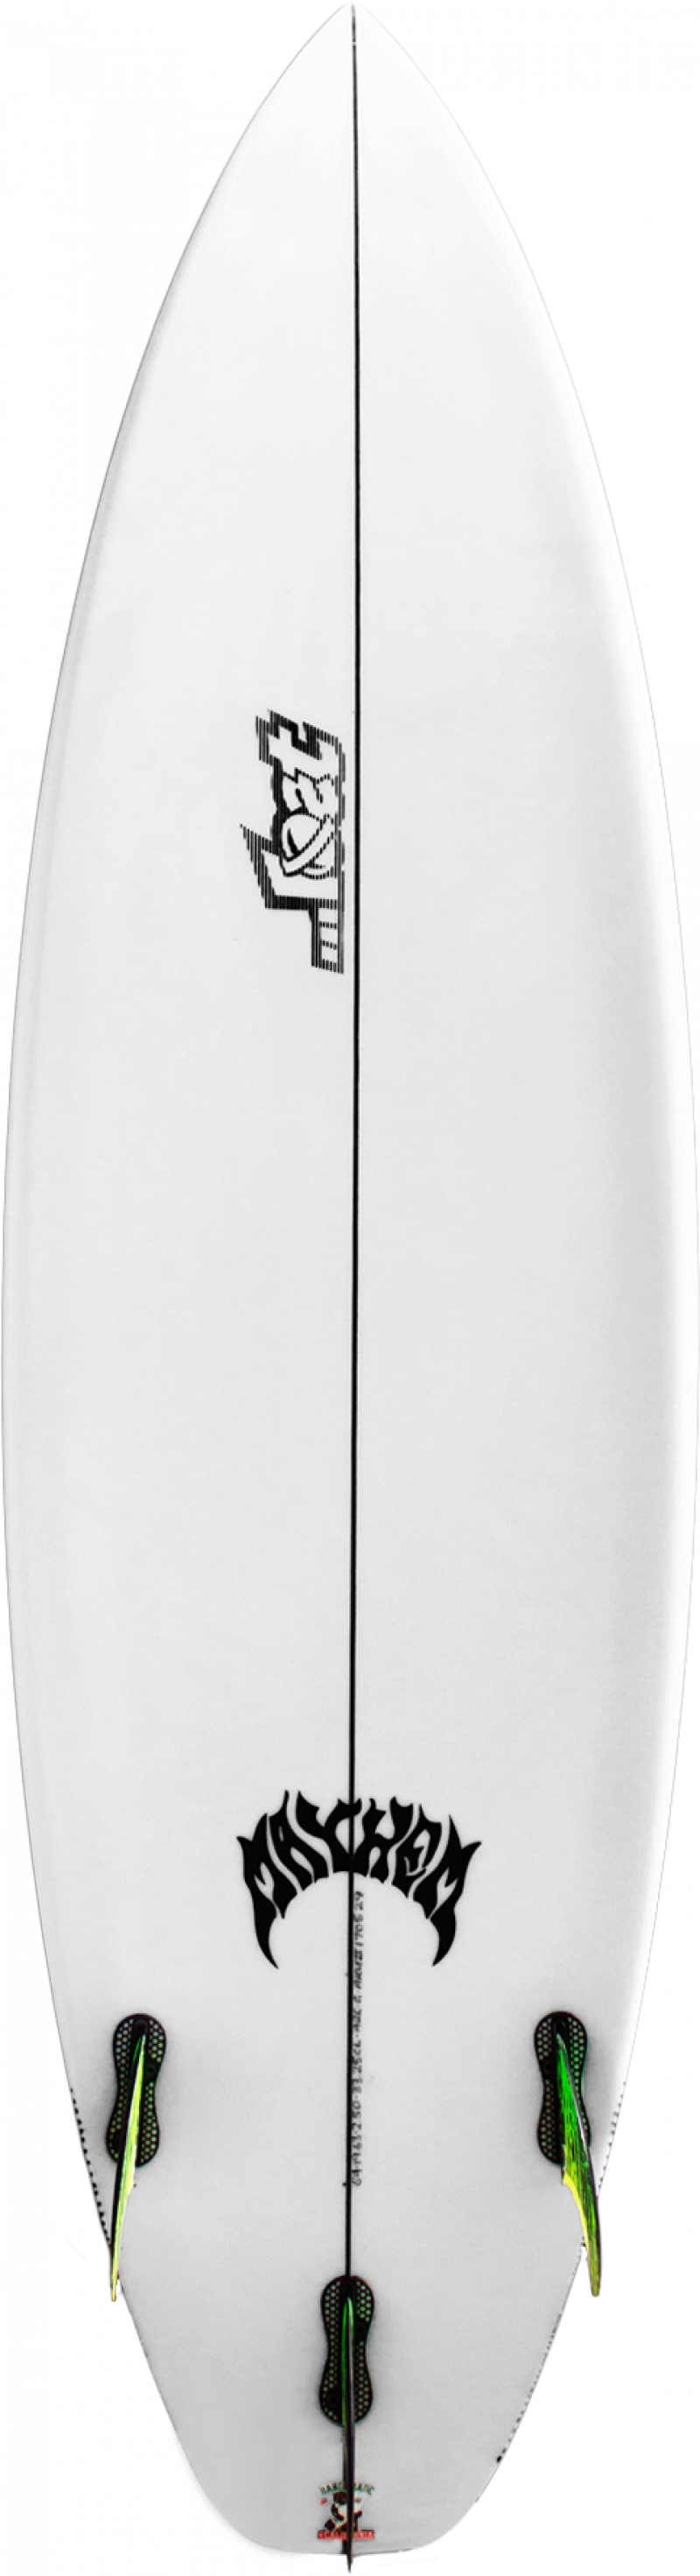 Lost Mayhem Pocket Rocket Proformance Surfboard